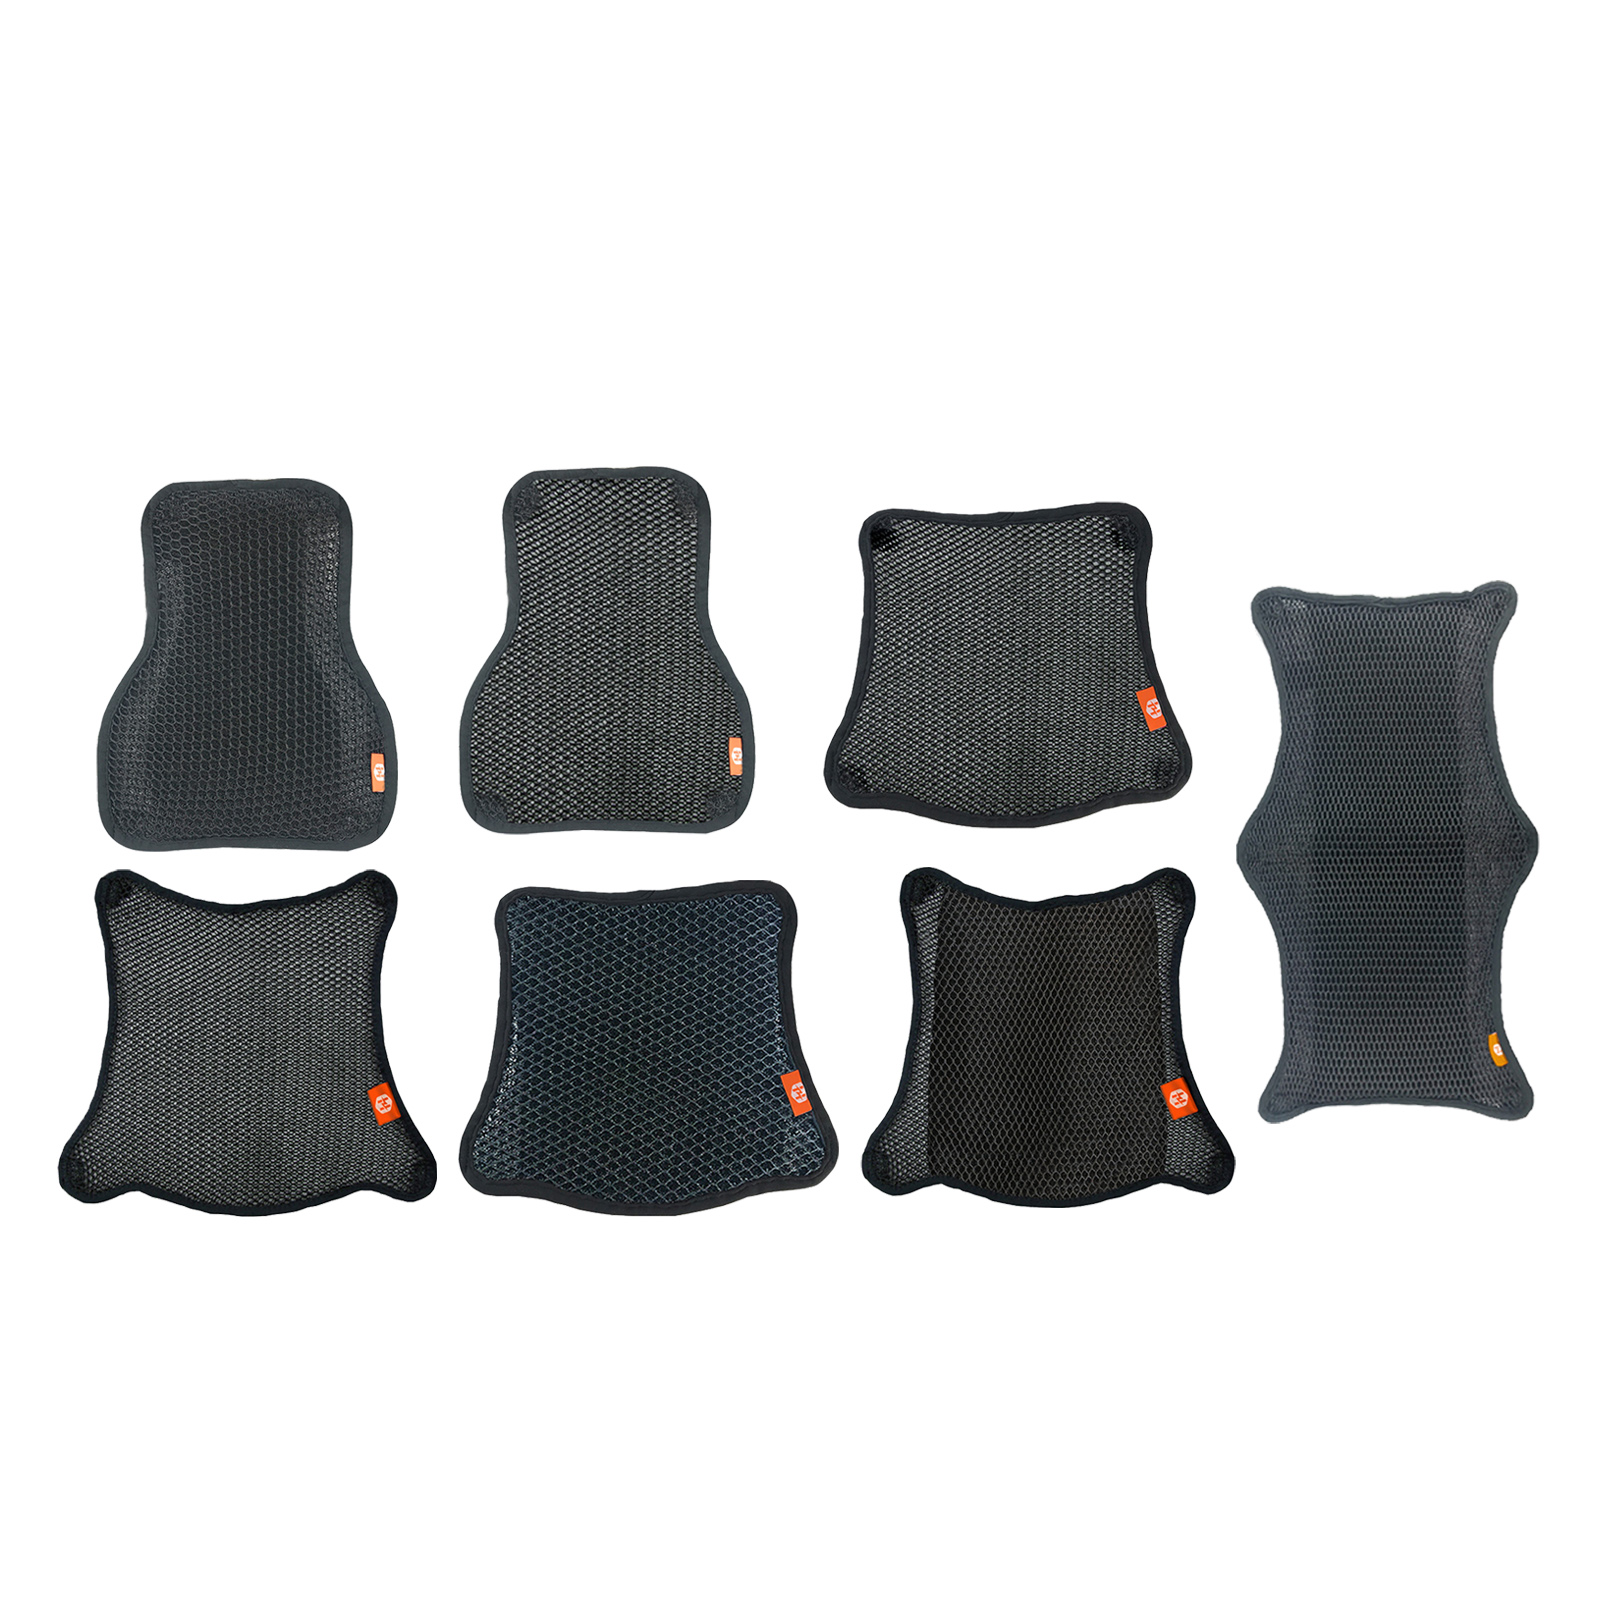 Summer Motorcycle Seat Cushion Breathable Cover Makes Long Rides More Comfortable Fits Most Seats of Sport Touring